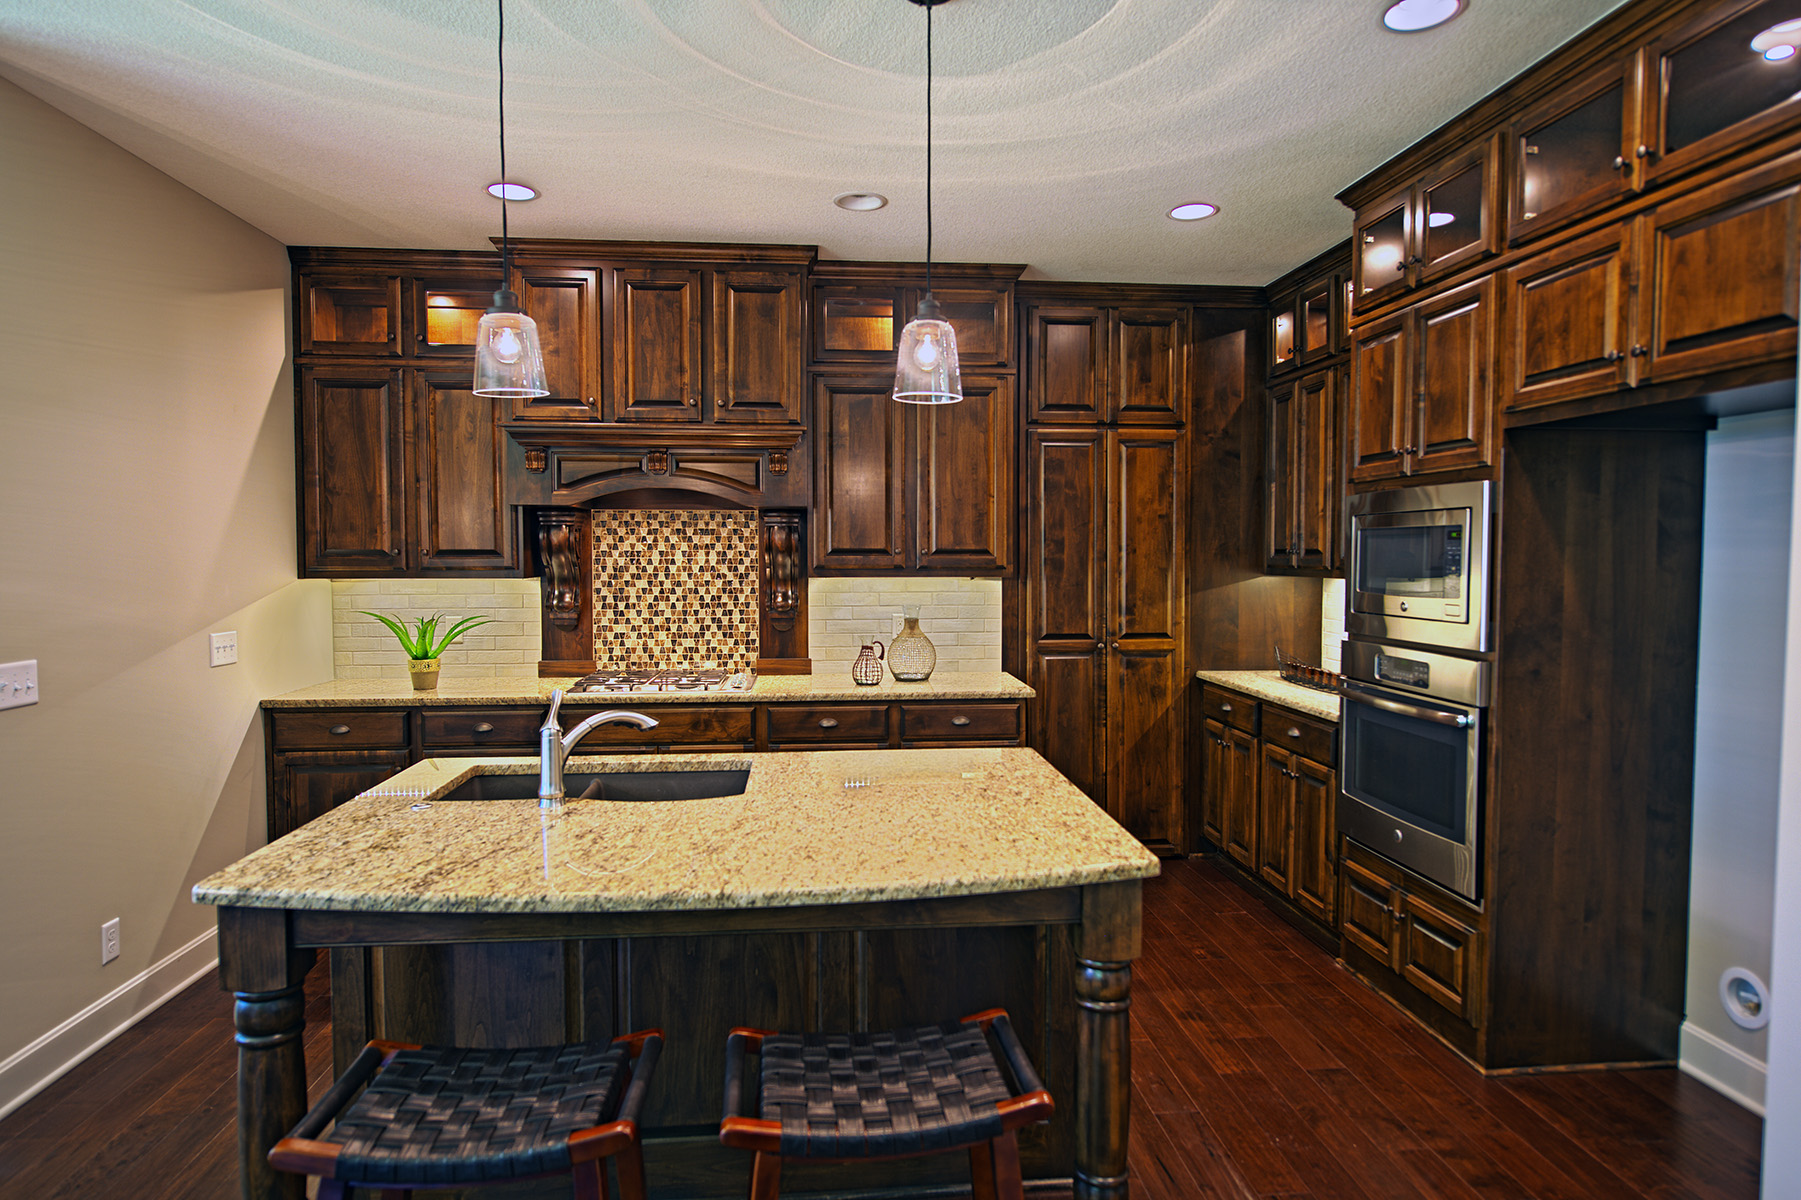 Reilly Home Builders, Canaan Stone Works, granite countertops, stainless steel appliances, new home, custom countertops